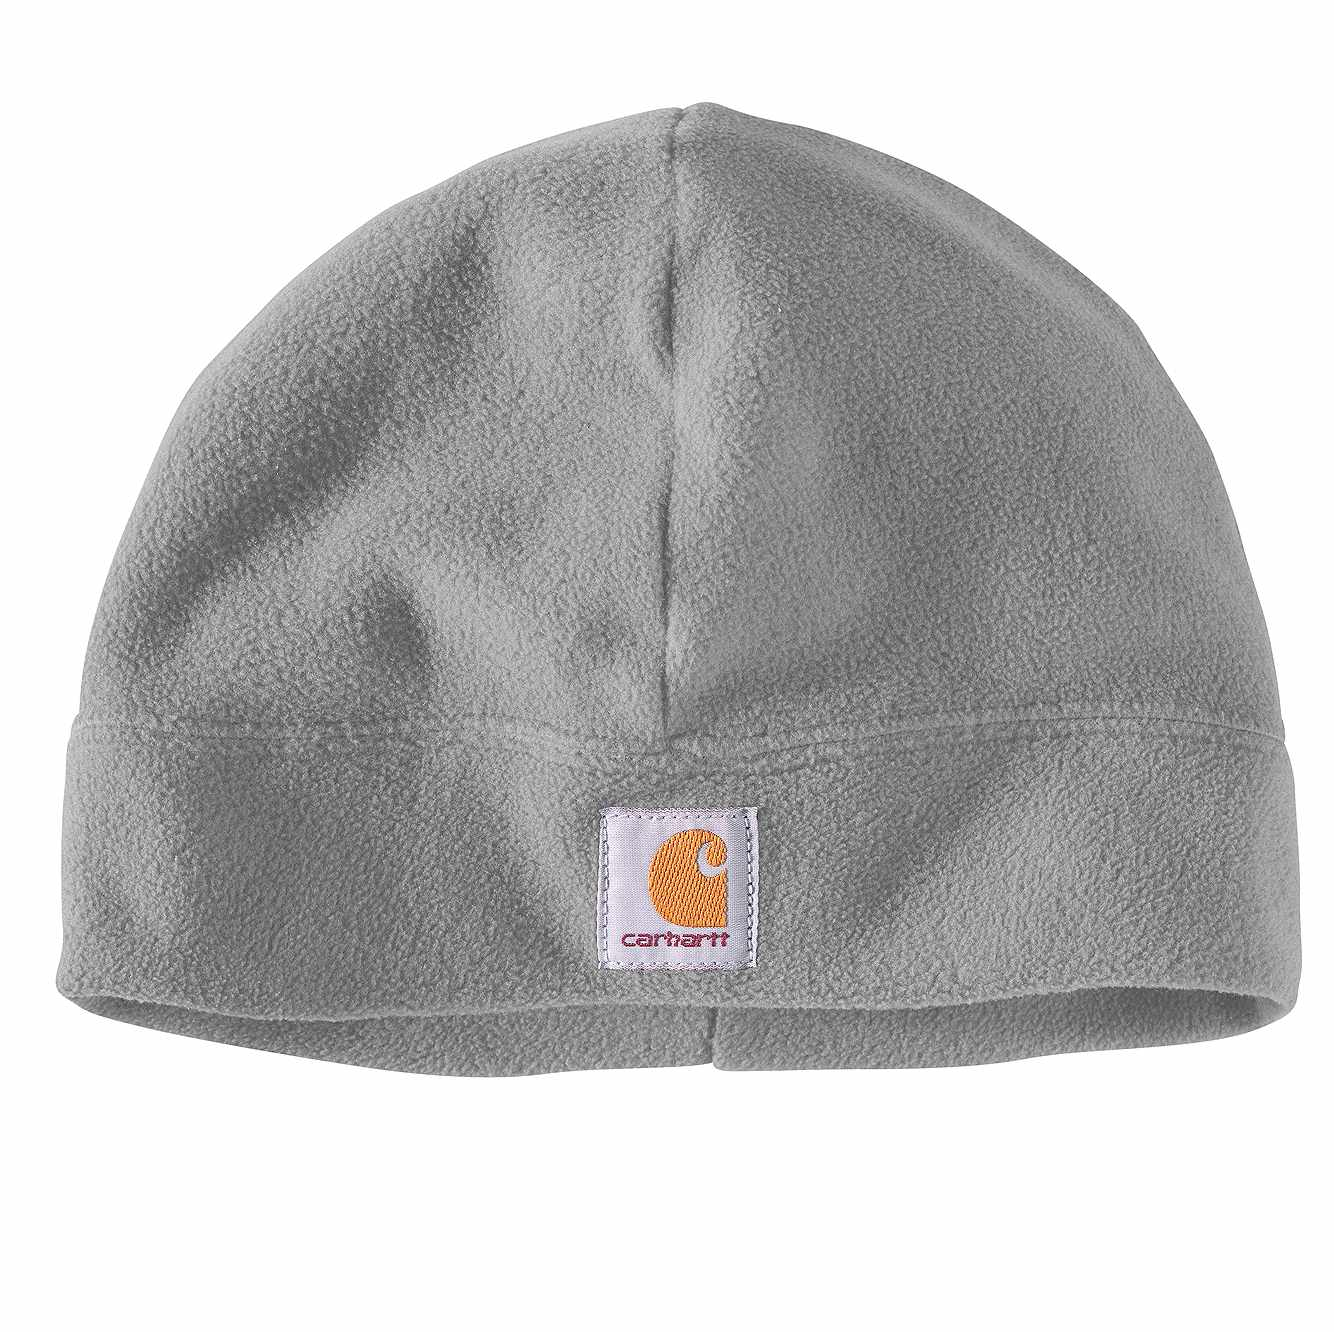 4961919c5e2d4 Men s Fleece Hat A207